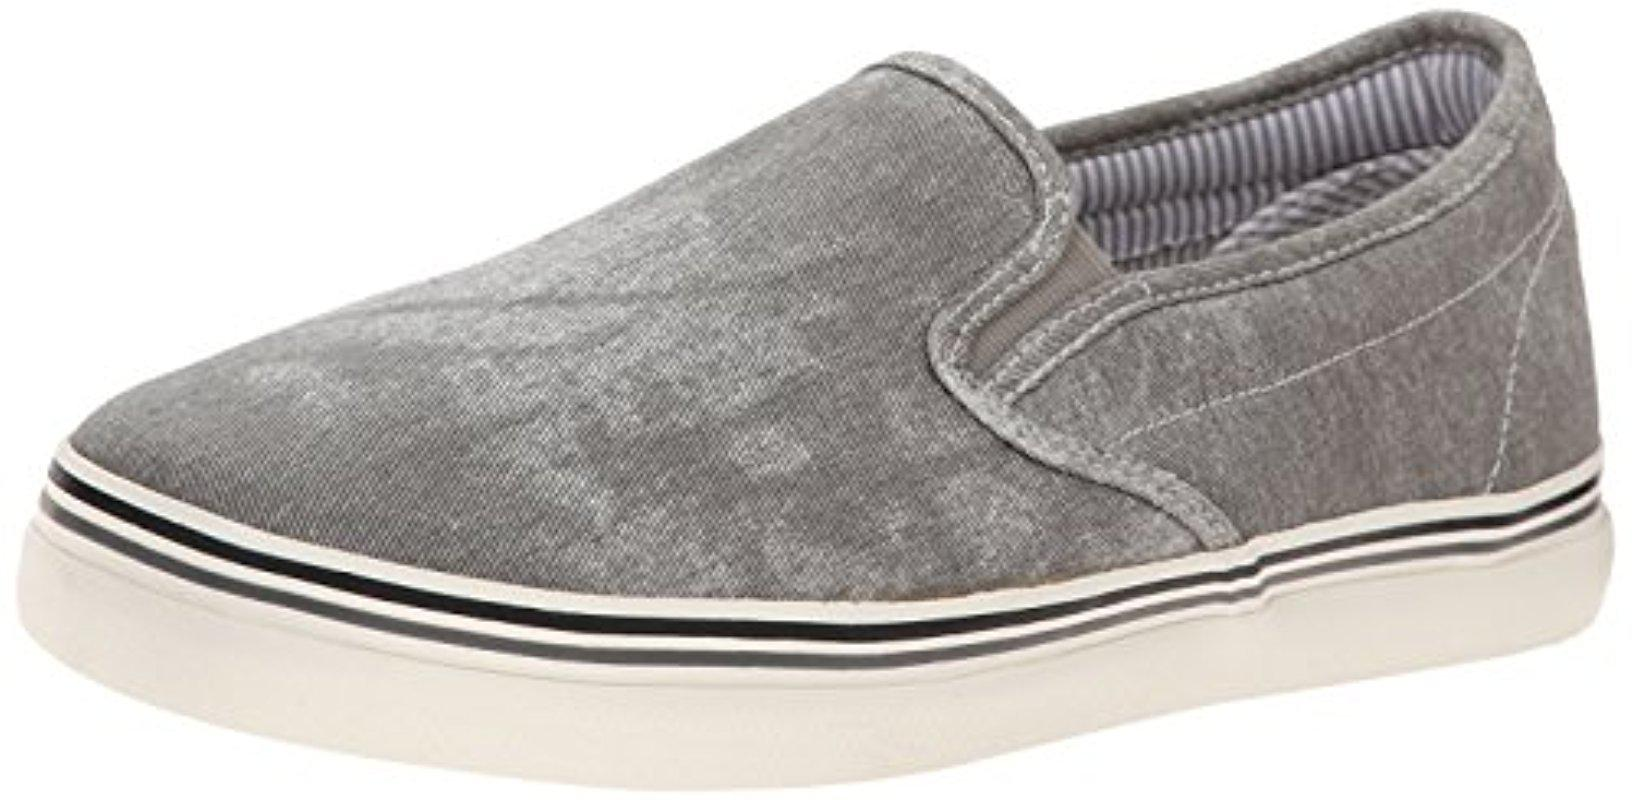 Kenneth Cole Reaction Mens Globe Trottern Grey - Sneakers